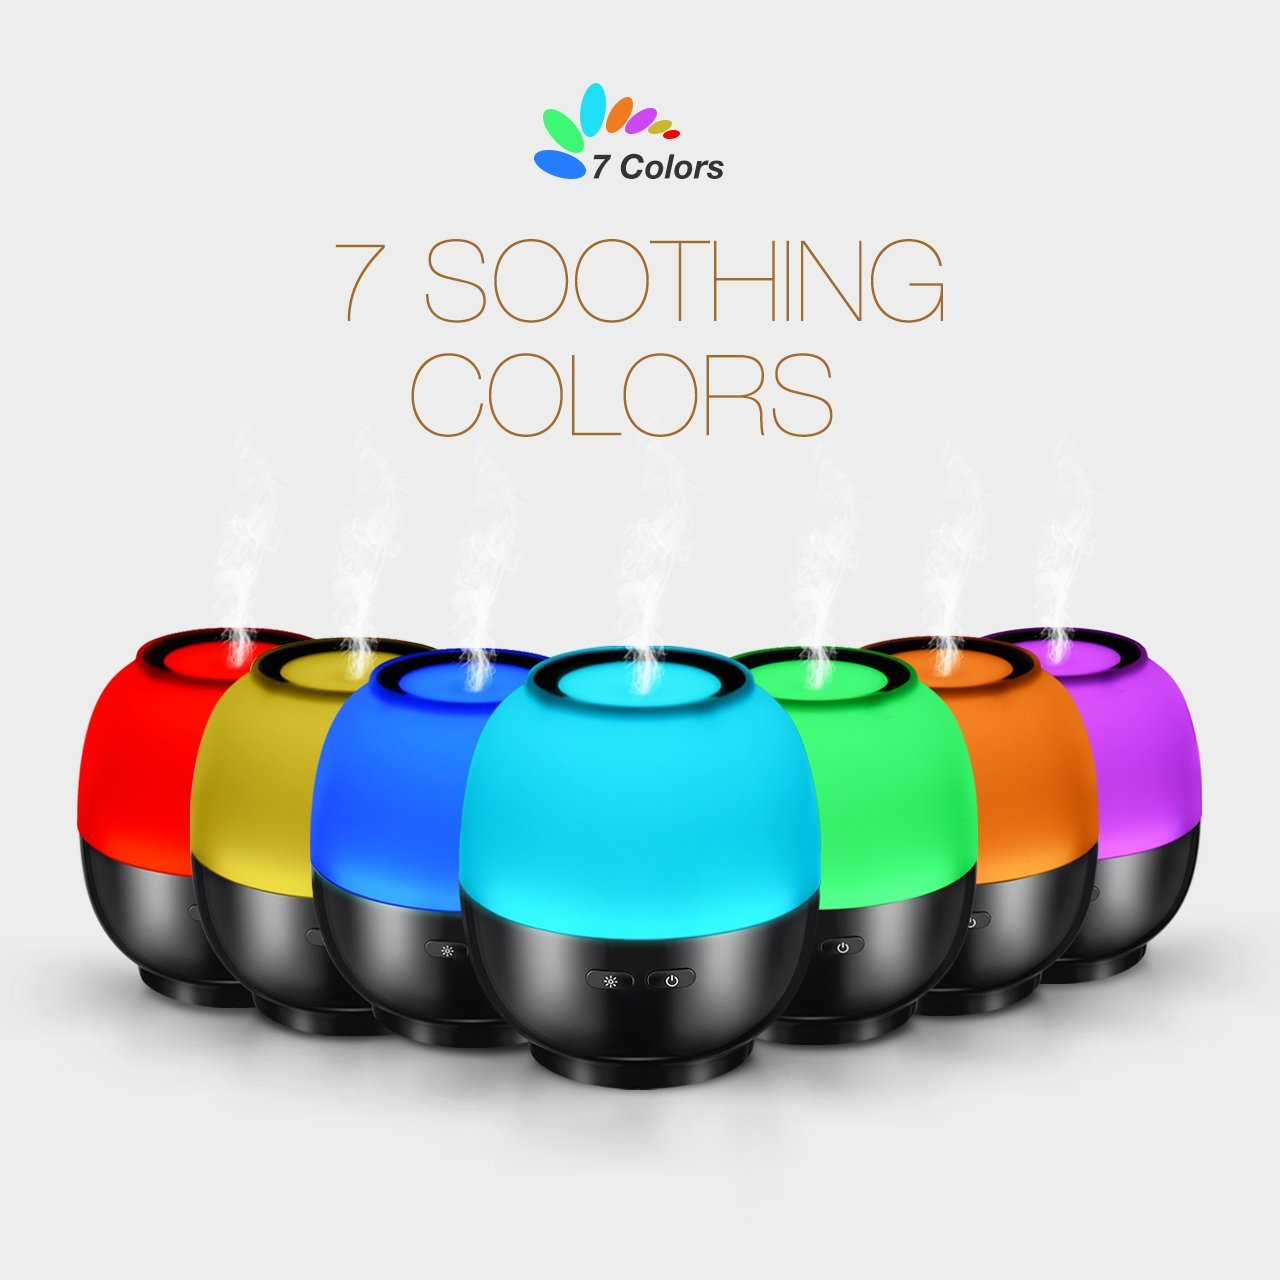 VicTsing Essential Oil Diffuser, 140ml Aroma Essential Oil Diffuser with 7-Color LED Light, Waterless Auto-Off Function, Whisper-Quiet Operation, Suits for Home, Yoga, Office, Spa, Bedroom, Baby Room 1